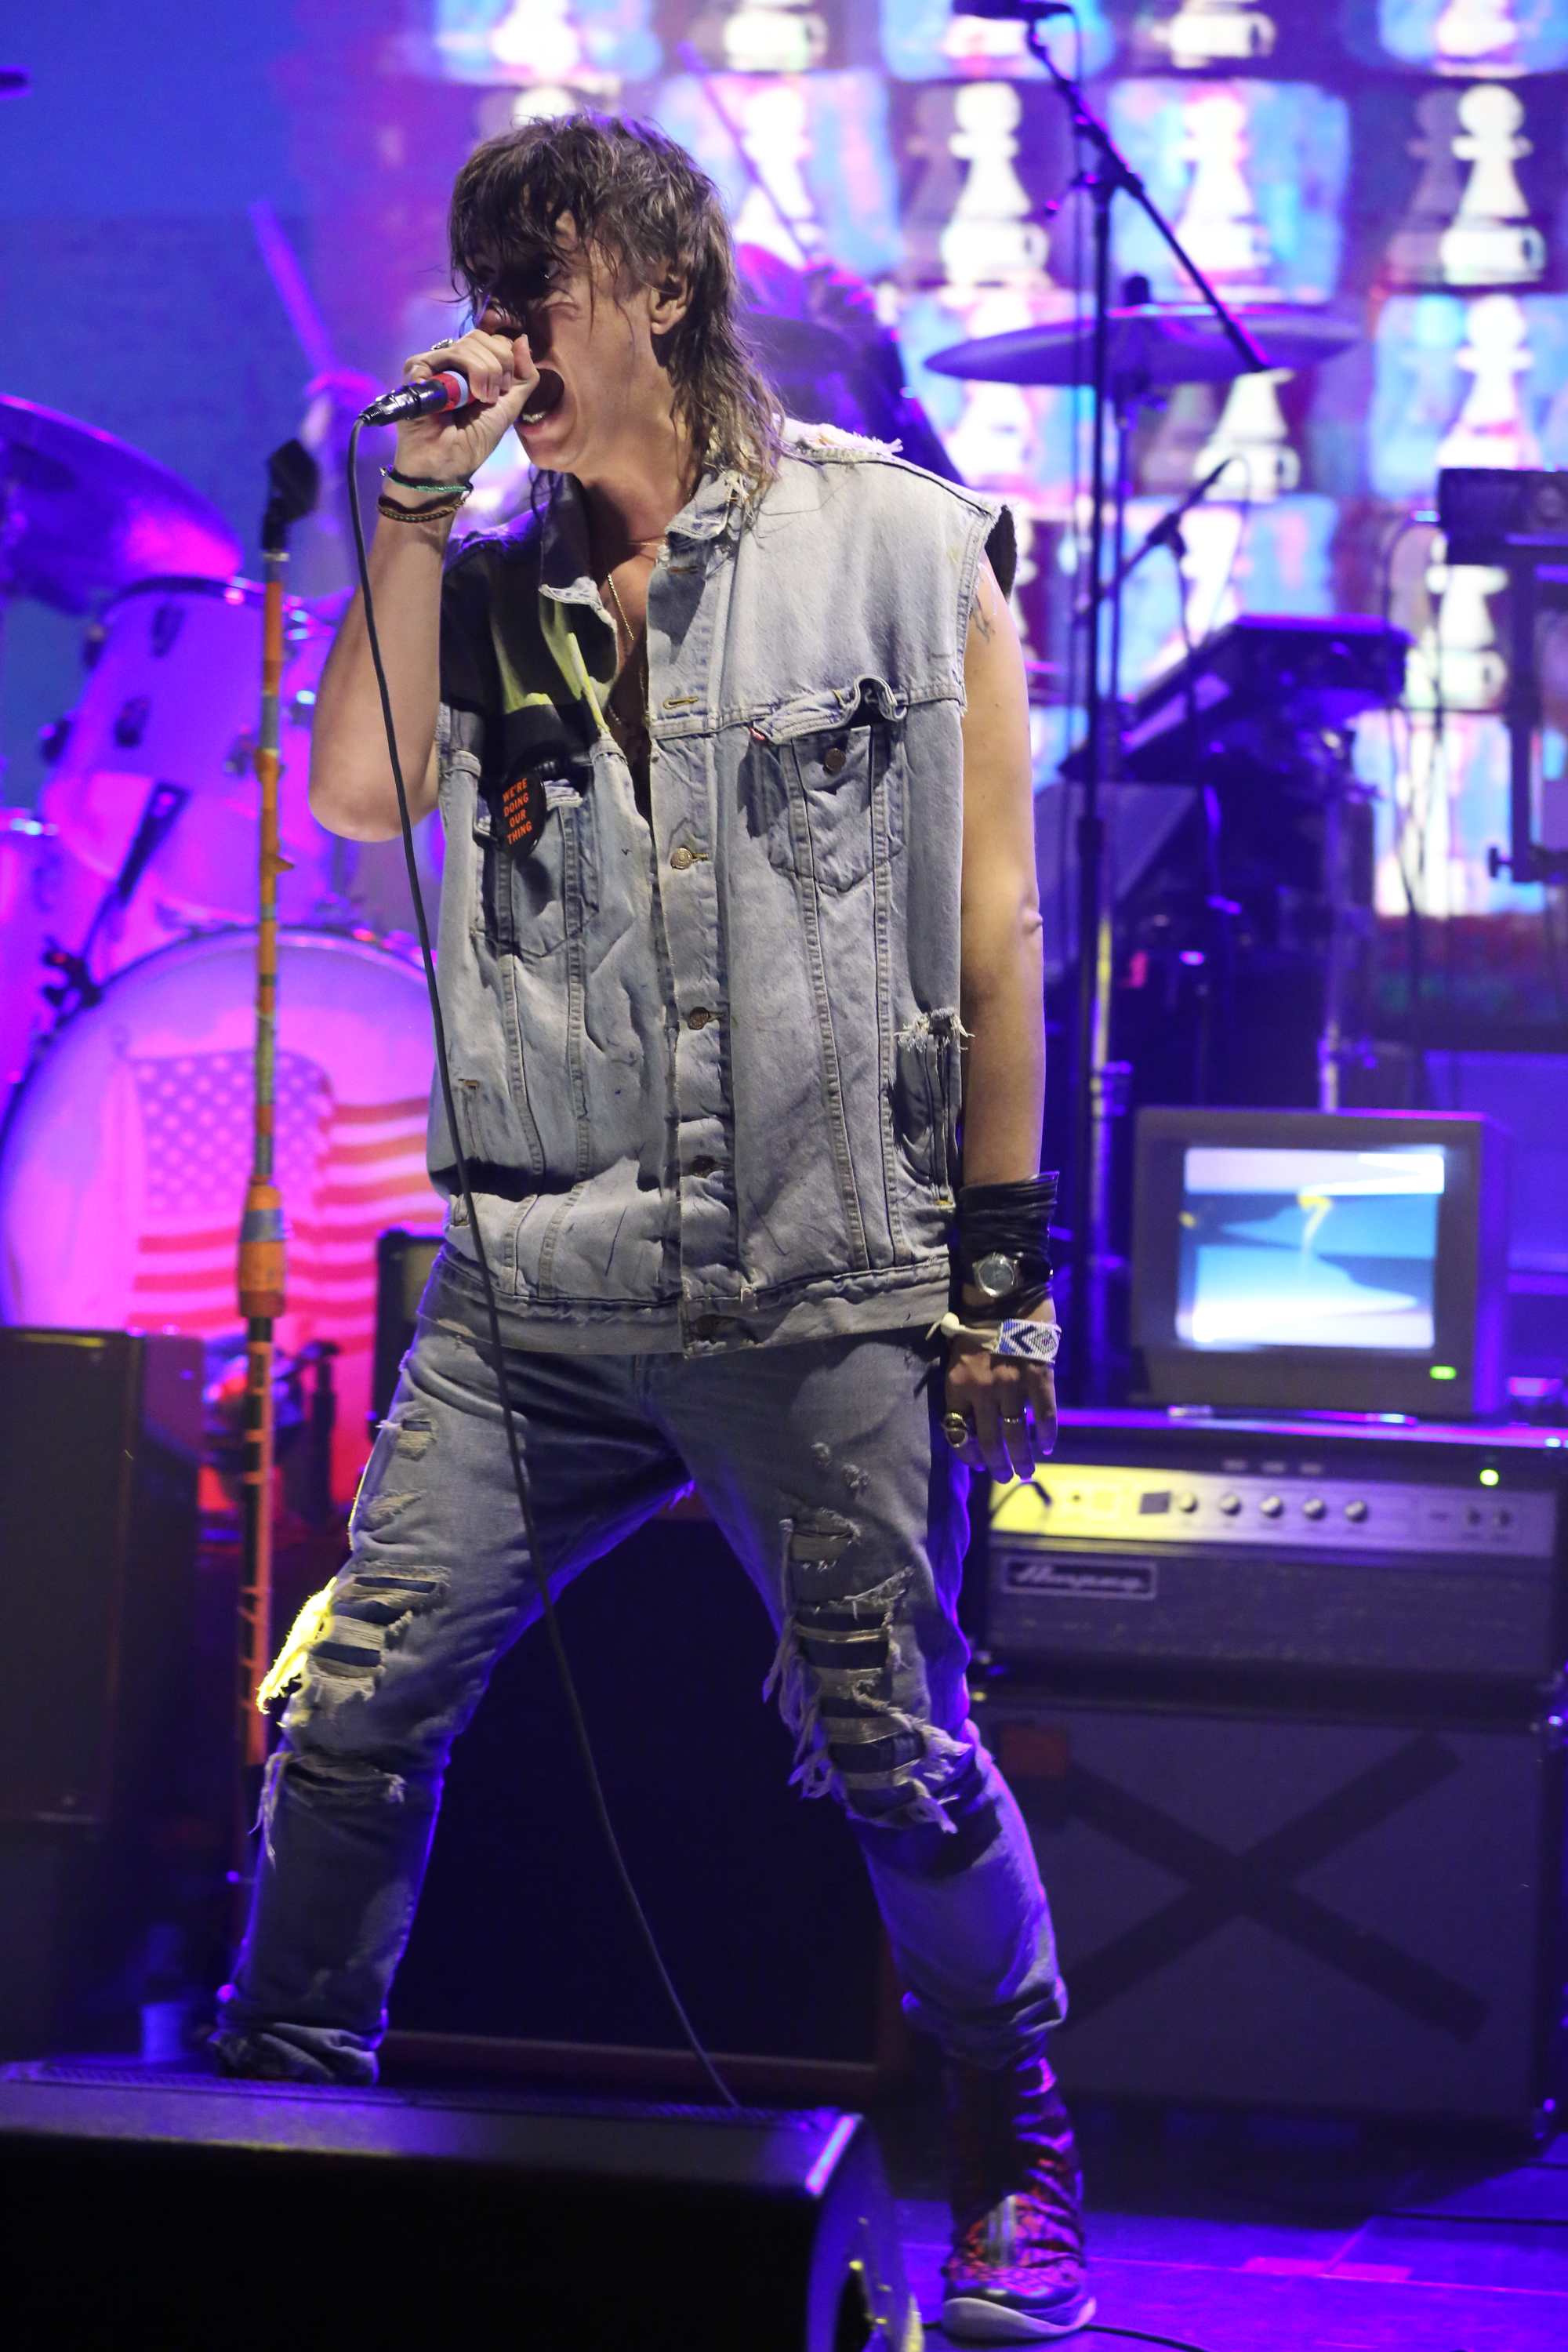 Musical guest Julian Casablancas and The Voidz perform at the Tonight Show on September 23, 2014.